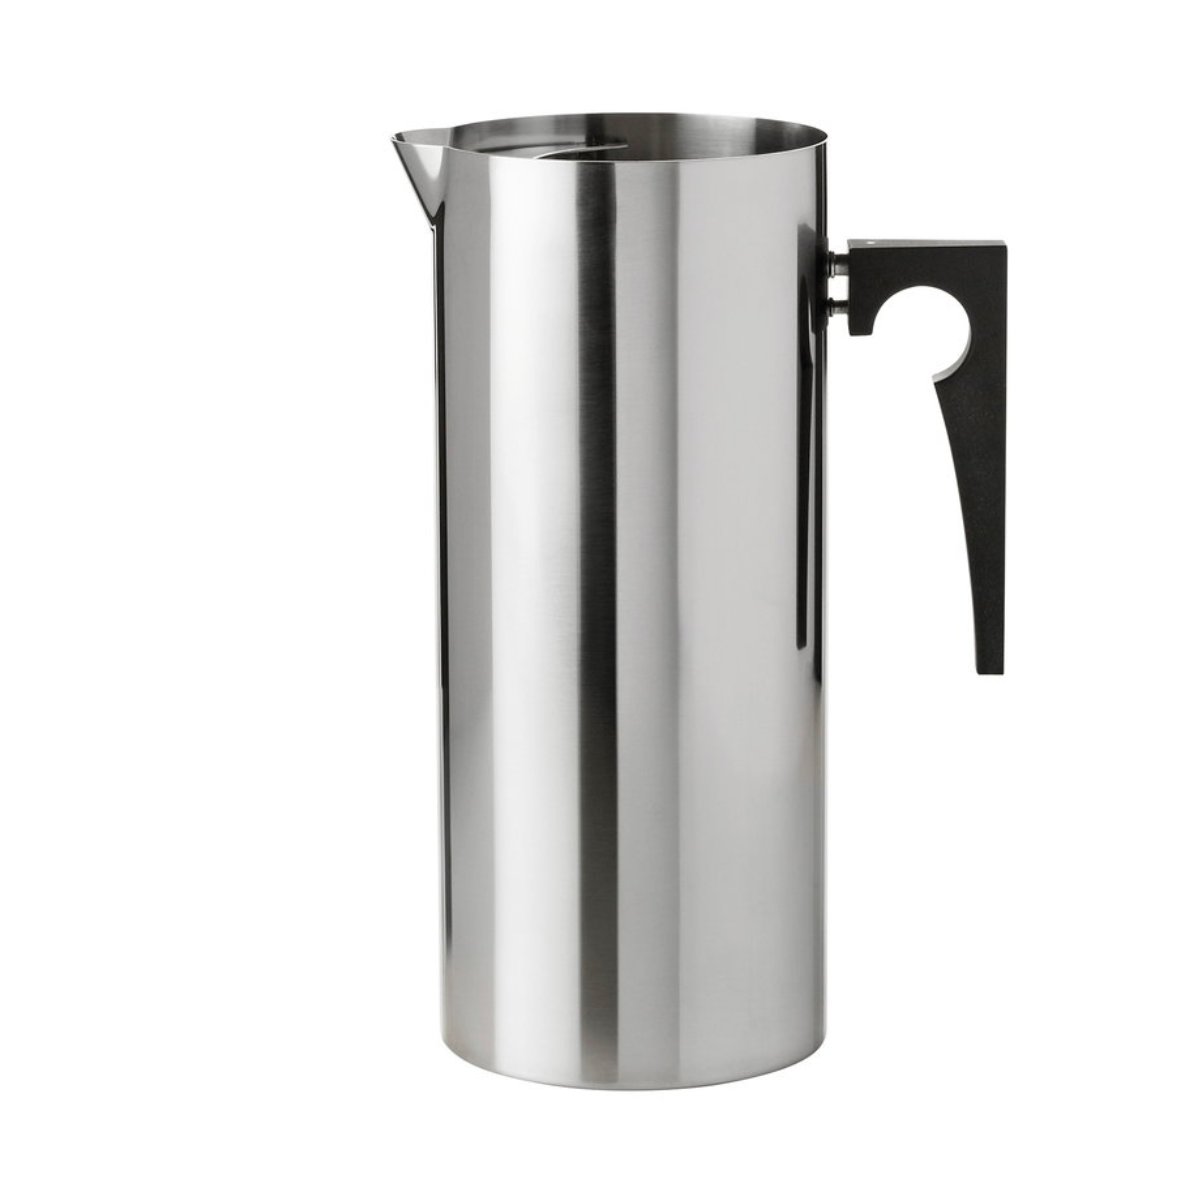 Stelton Arne Jacobsen jug with ice lip 2L